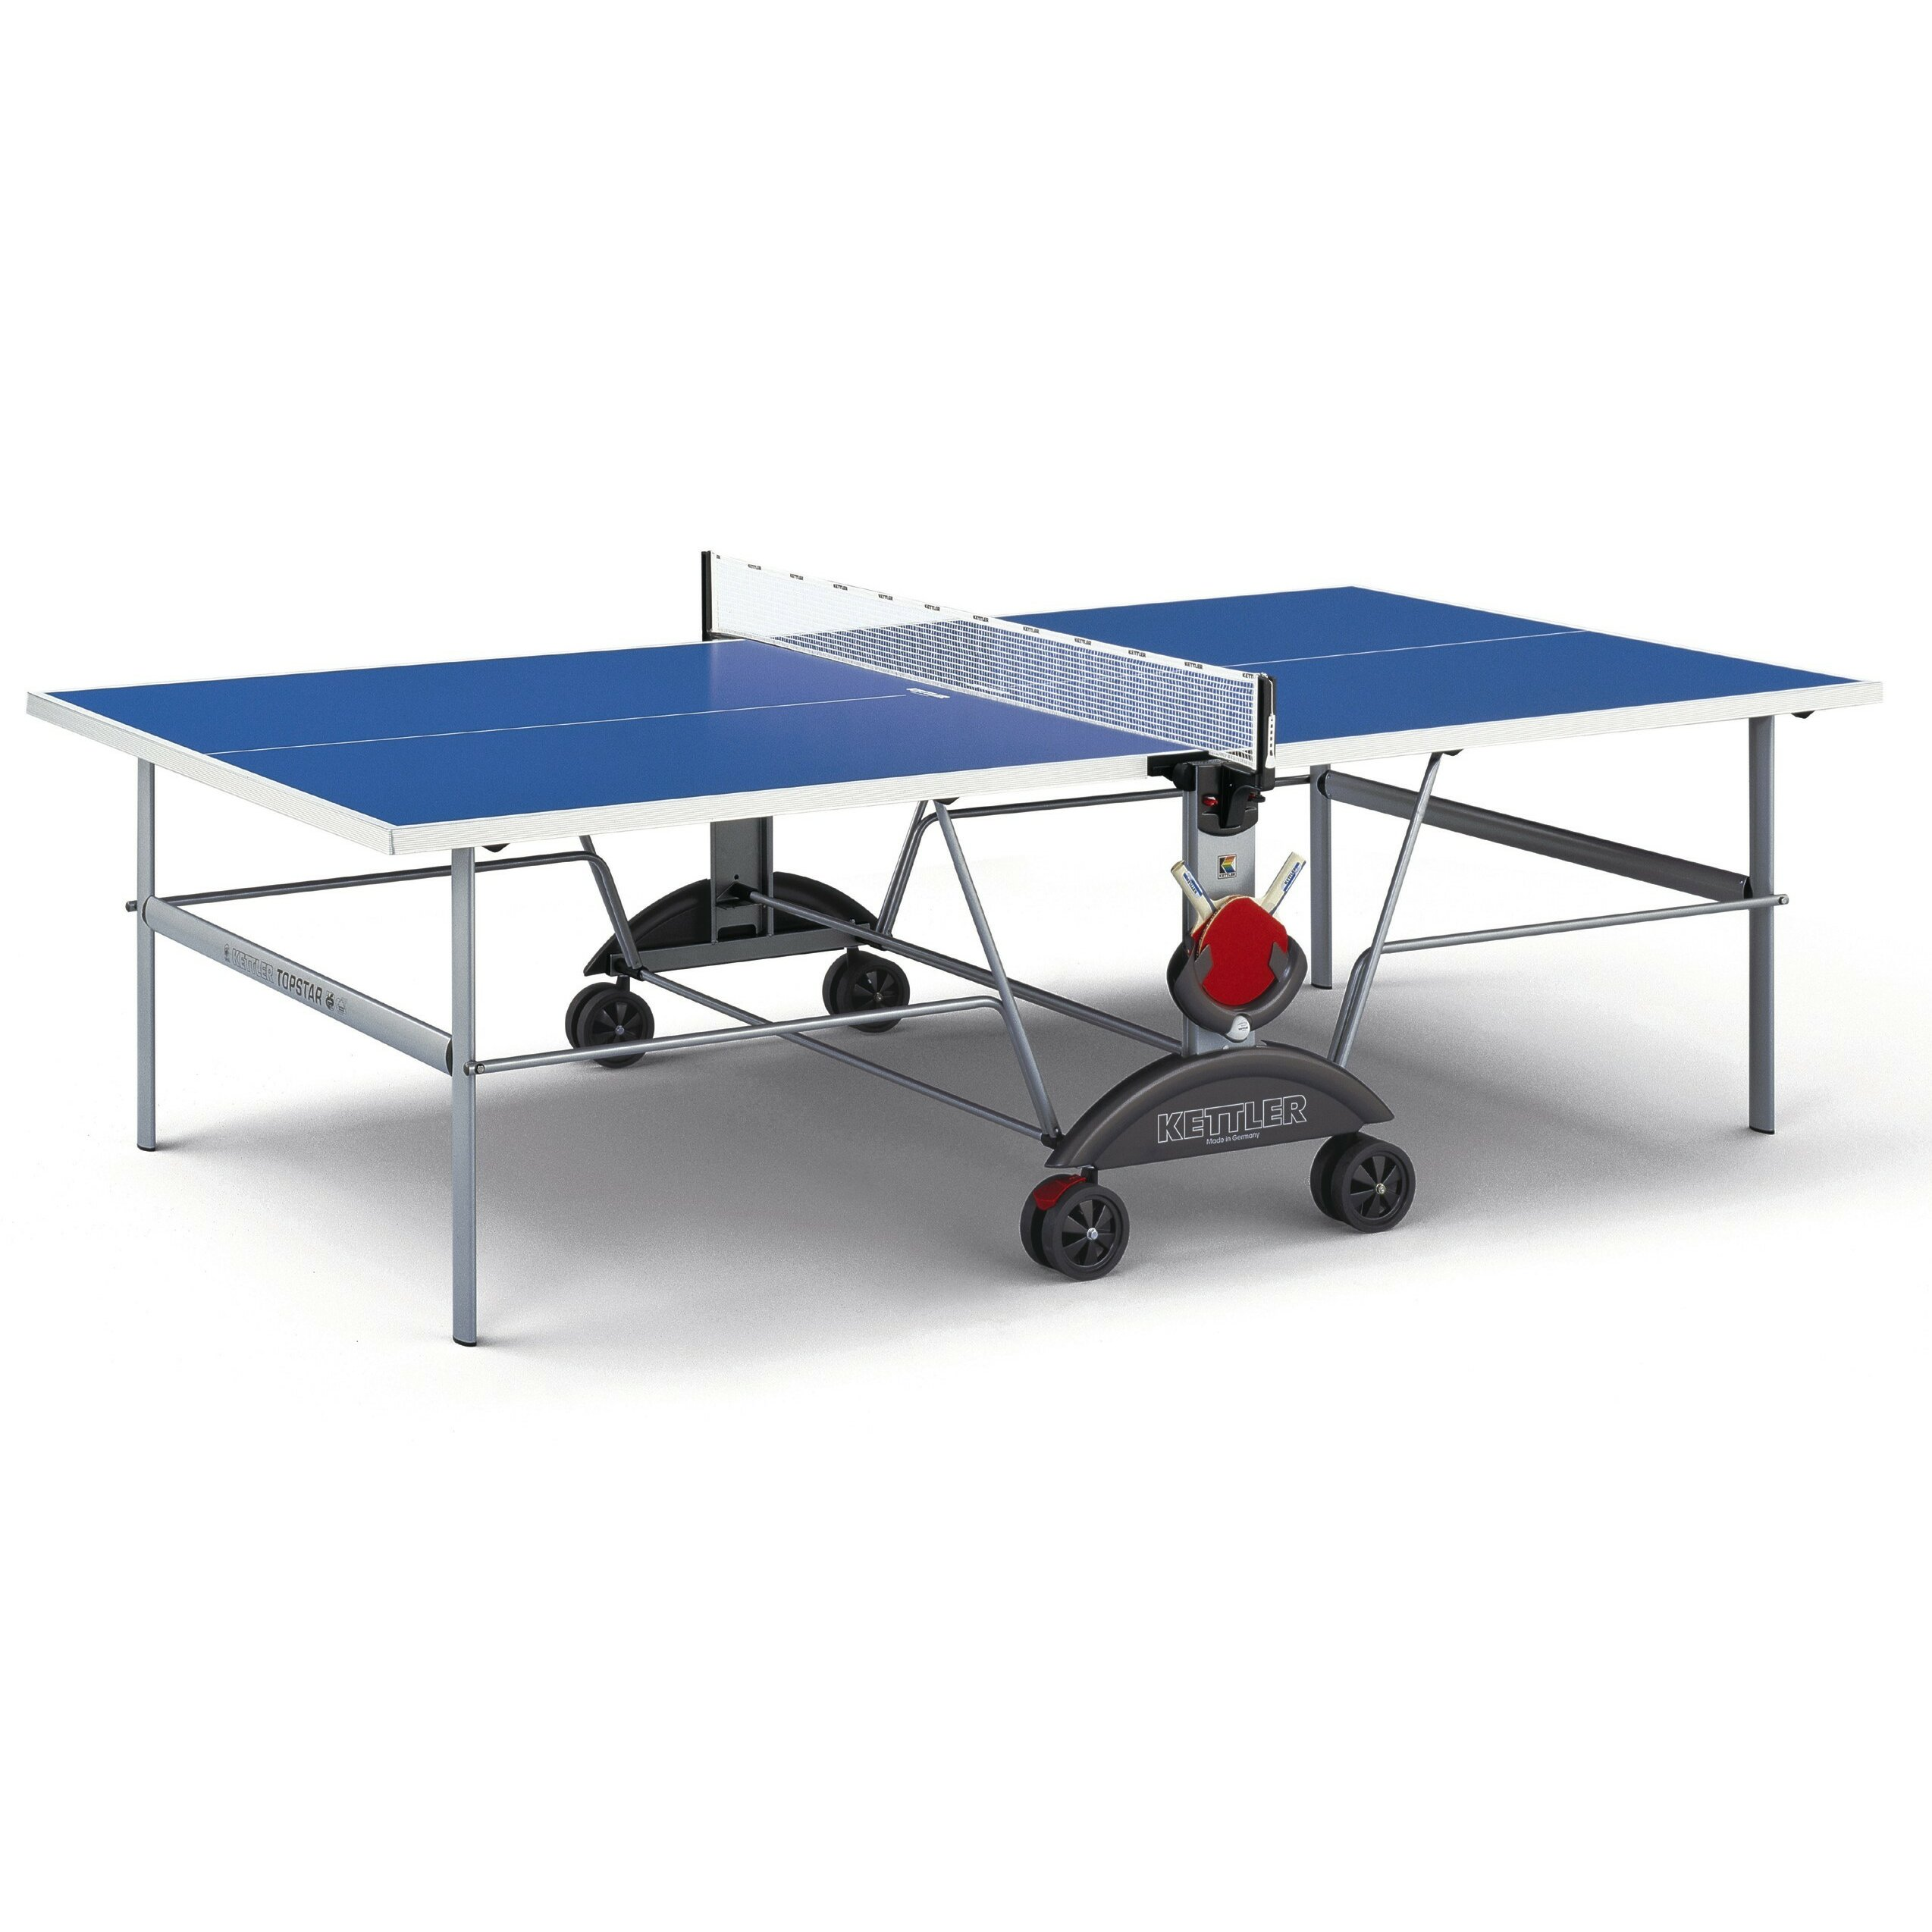 Kettler top star xl weatherproof table tennis table for Table kettler